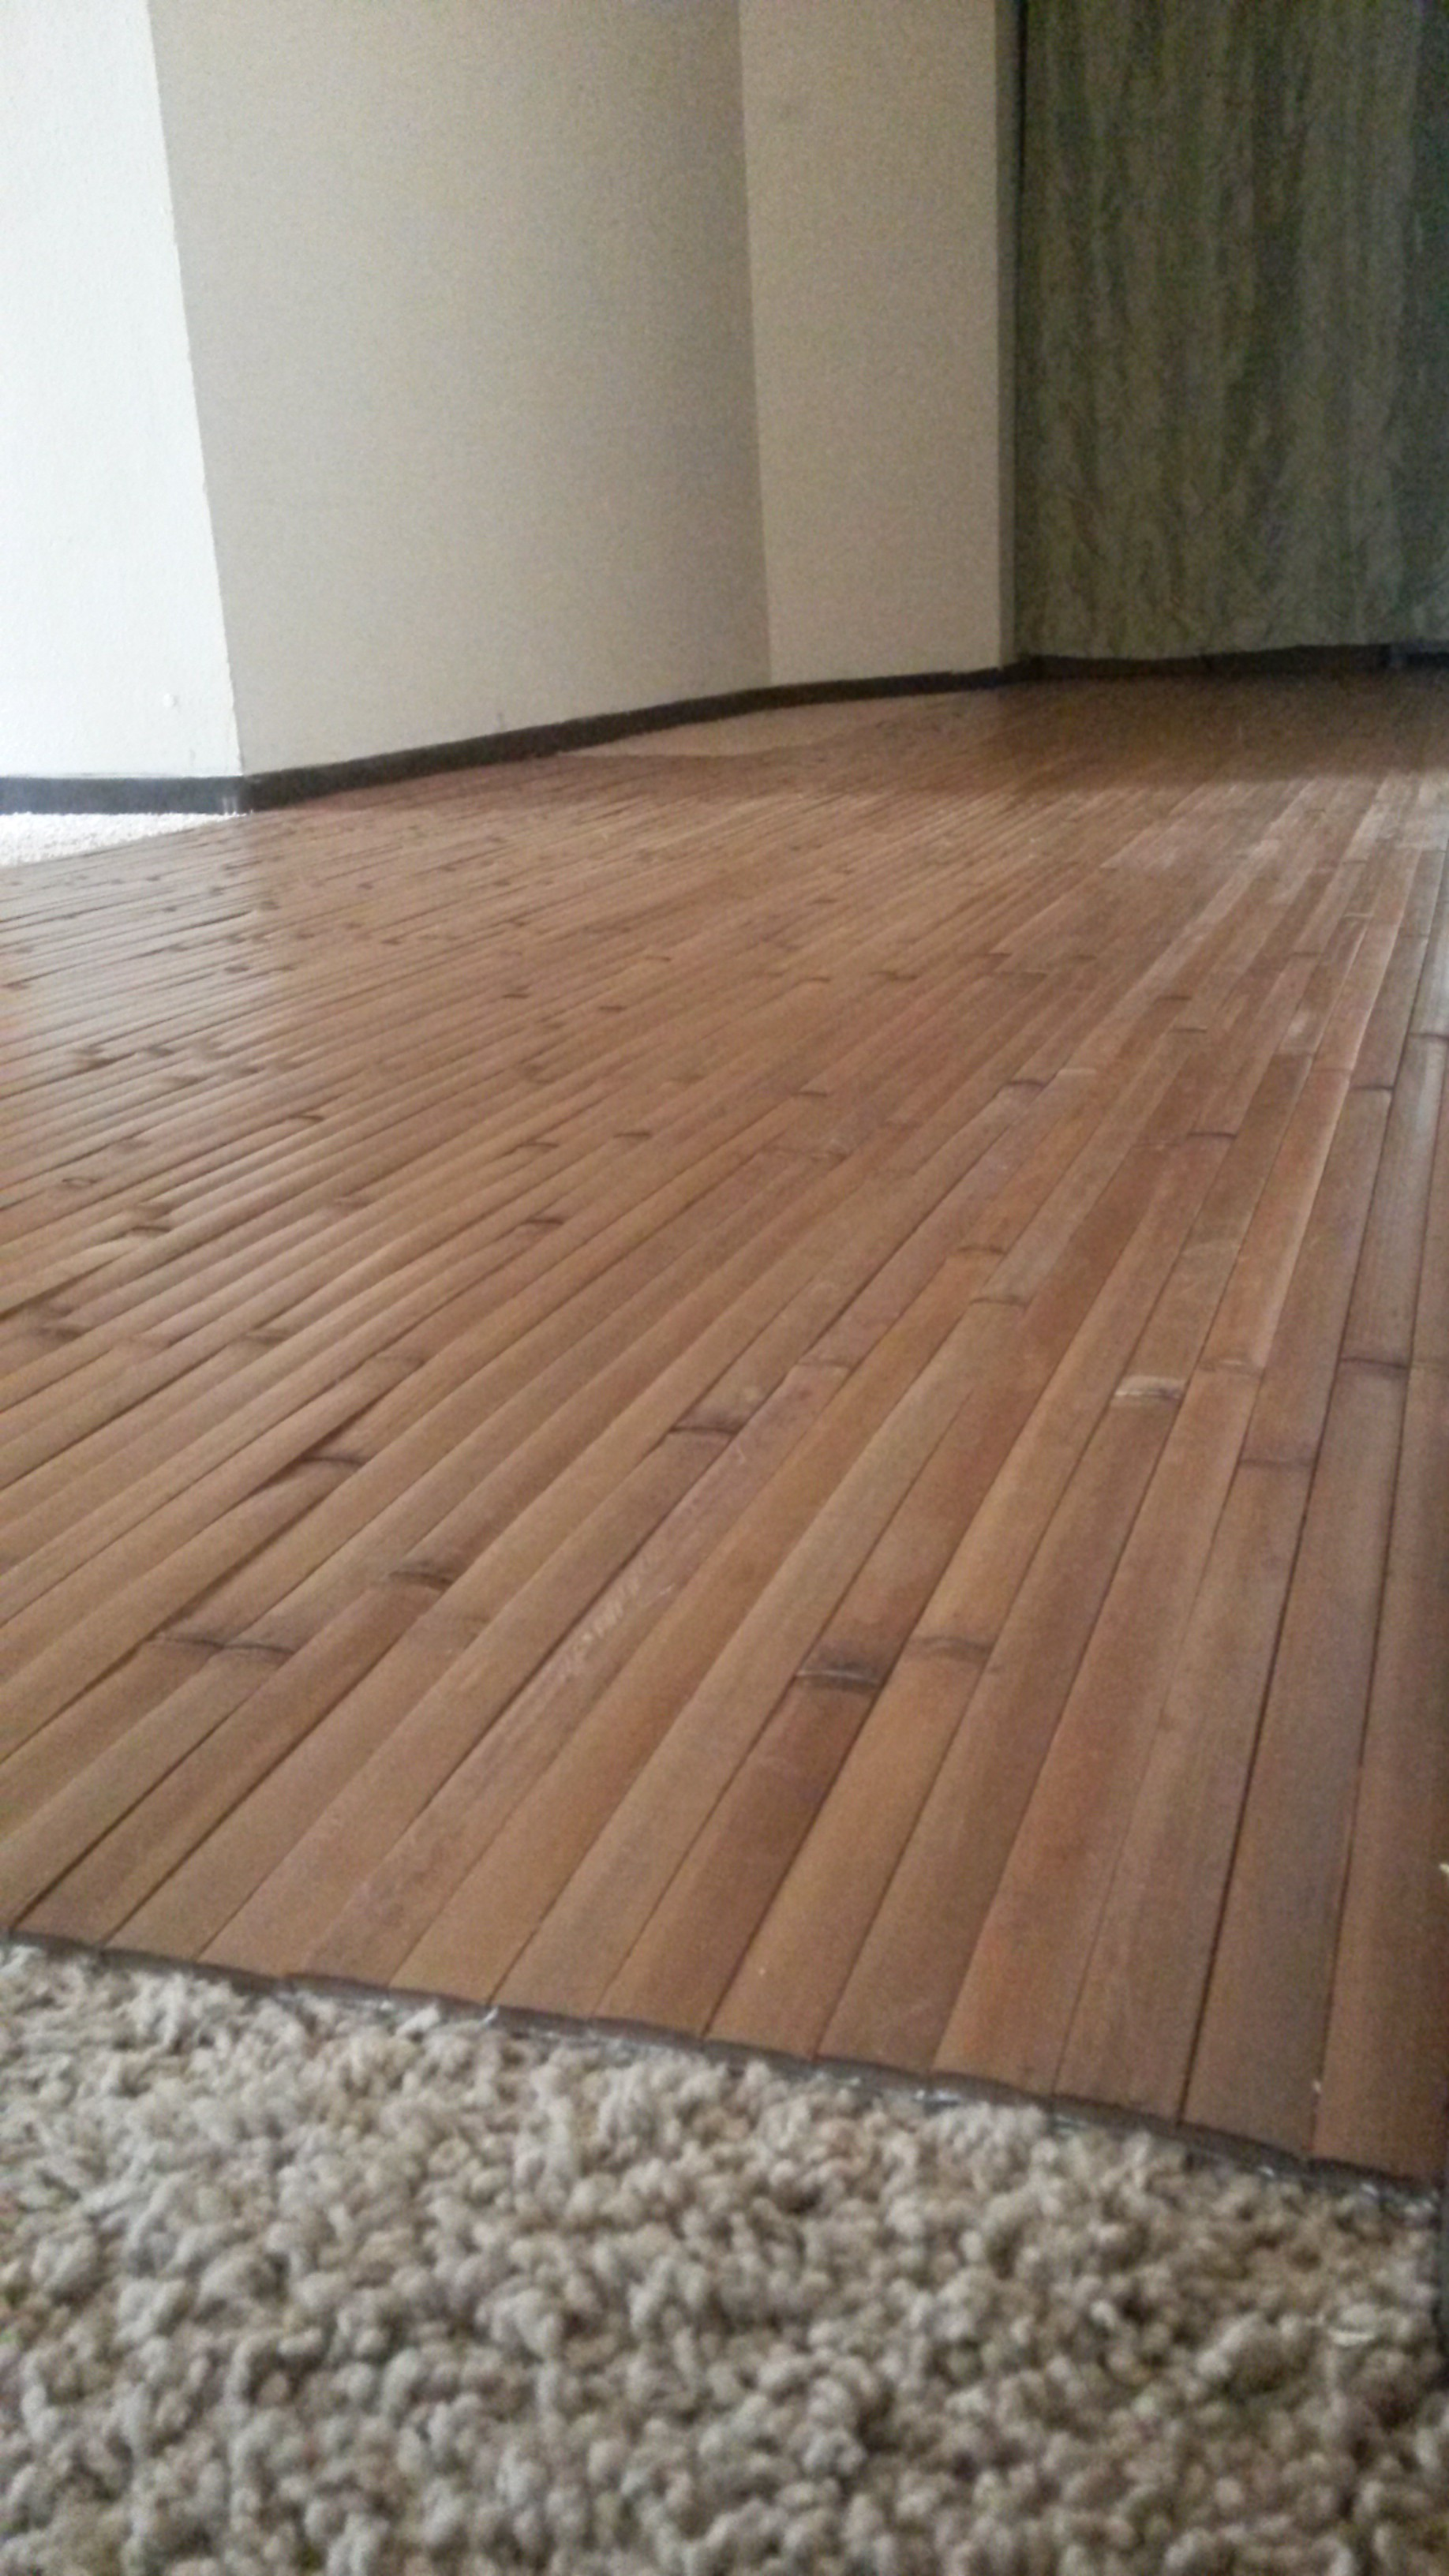 Best flooring over carpet solution ever skywaymom 8 x 4 bamboo wall panels make great flooring over carpet dailygadgetfo Image collections